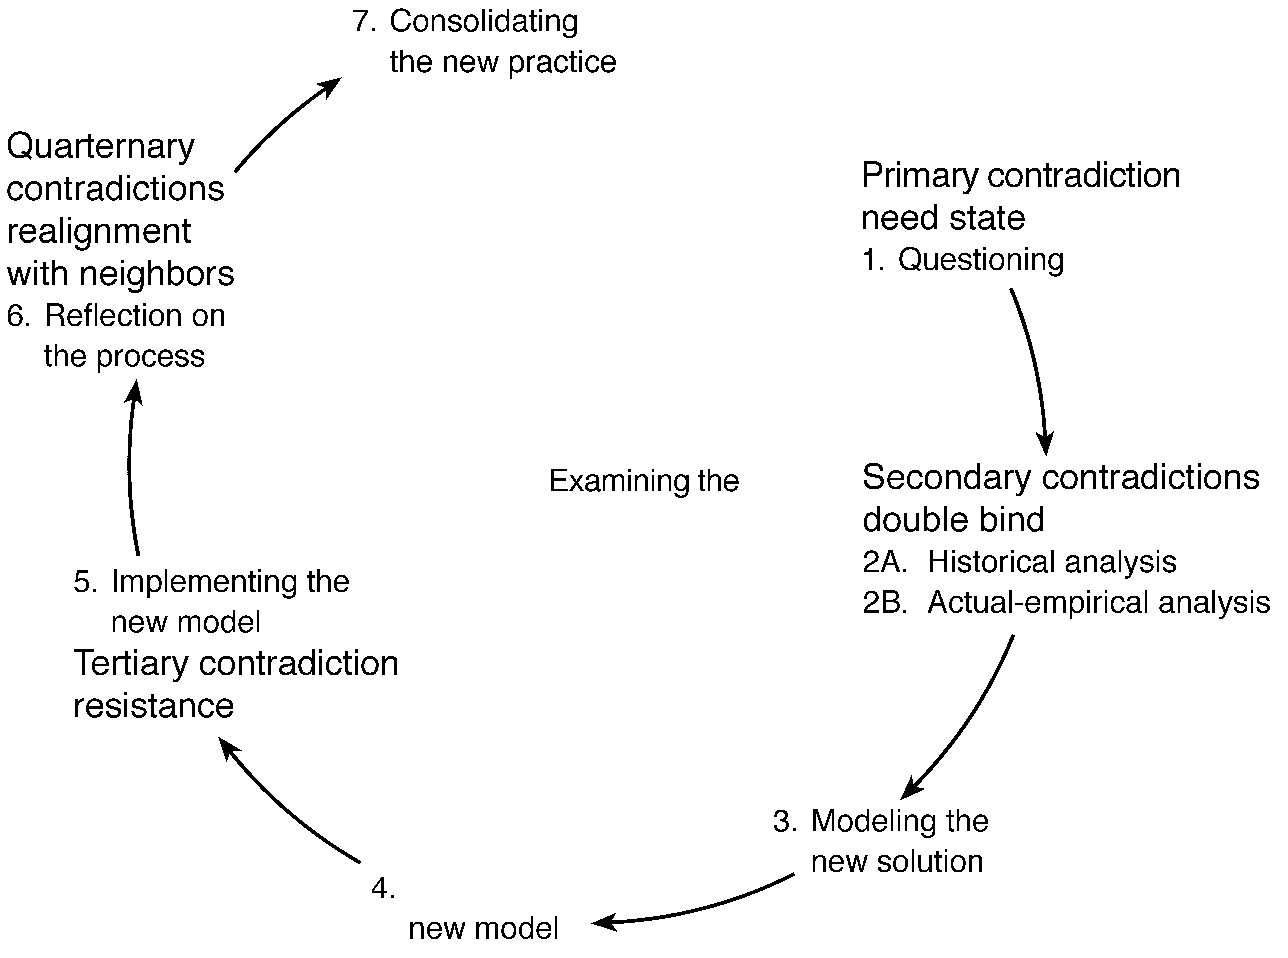 152 Y. Enqeström FIG. 11. Strategic learning actions and corresponding contradictions in the cycle of expansive learning.